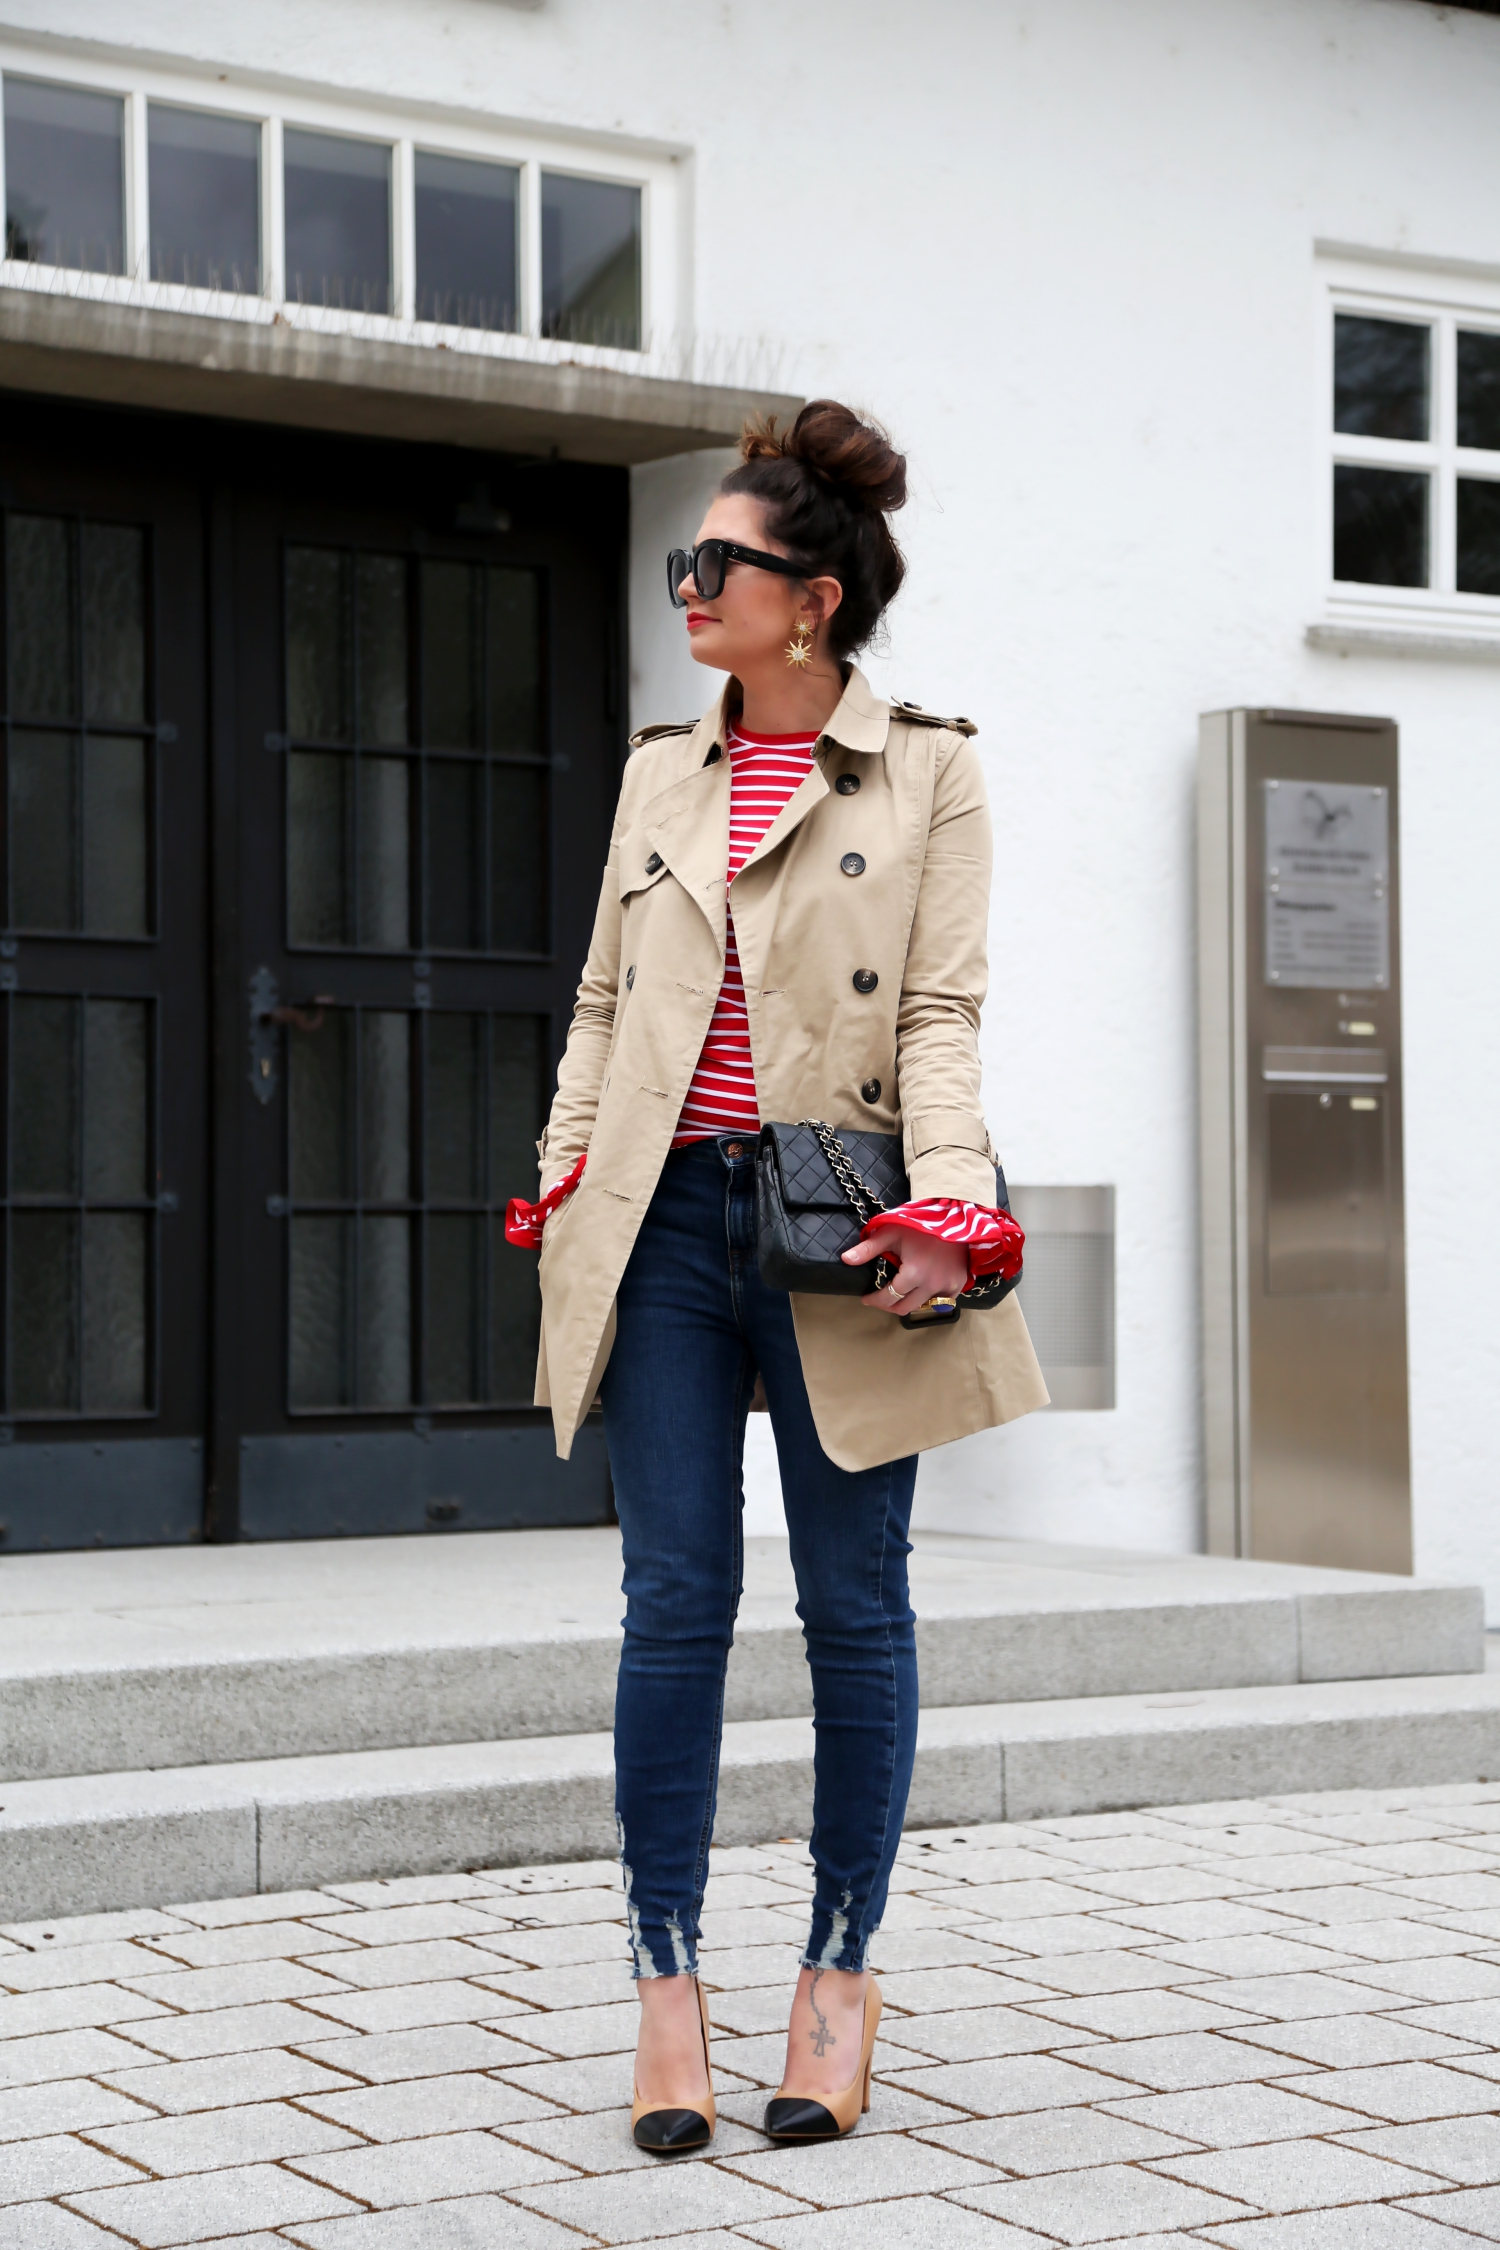 outfit-trenchoat-chanel-bag-celine-new-audrey-sunglasses-stripes